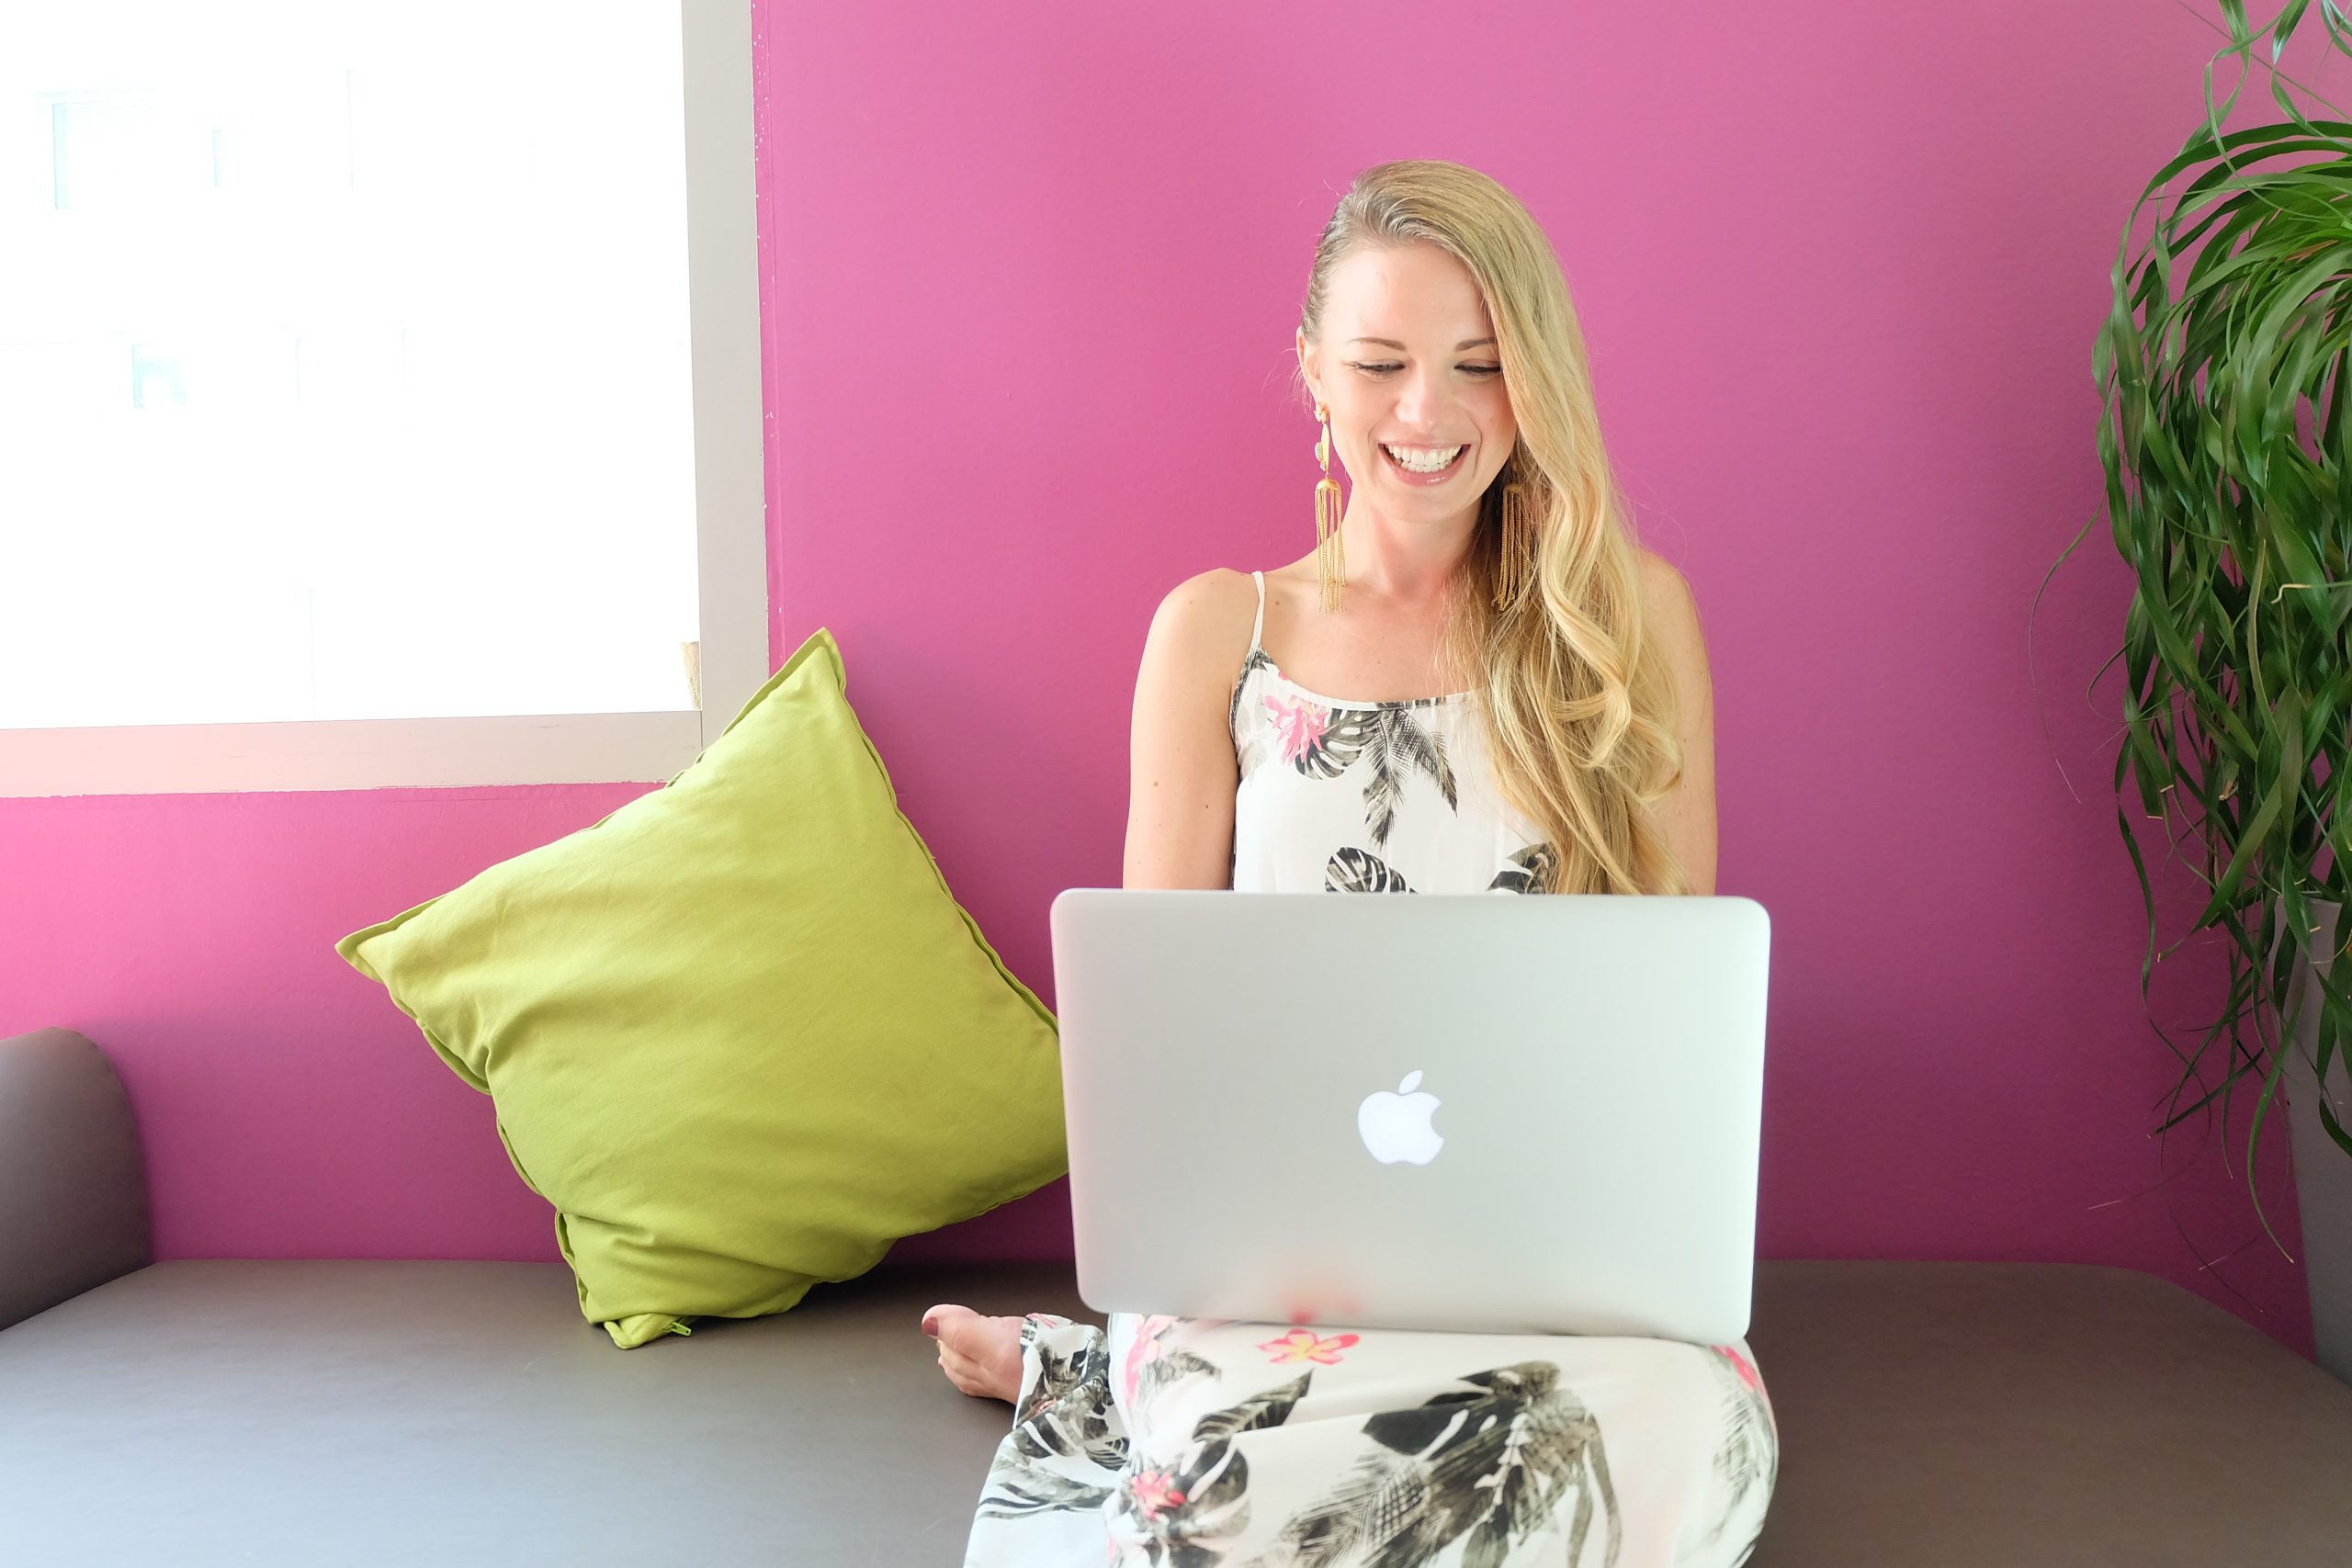 woman sitting at a computer with pink background